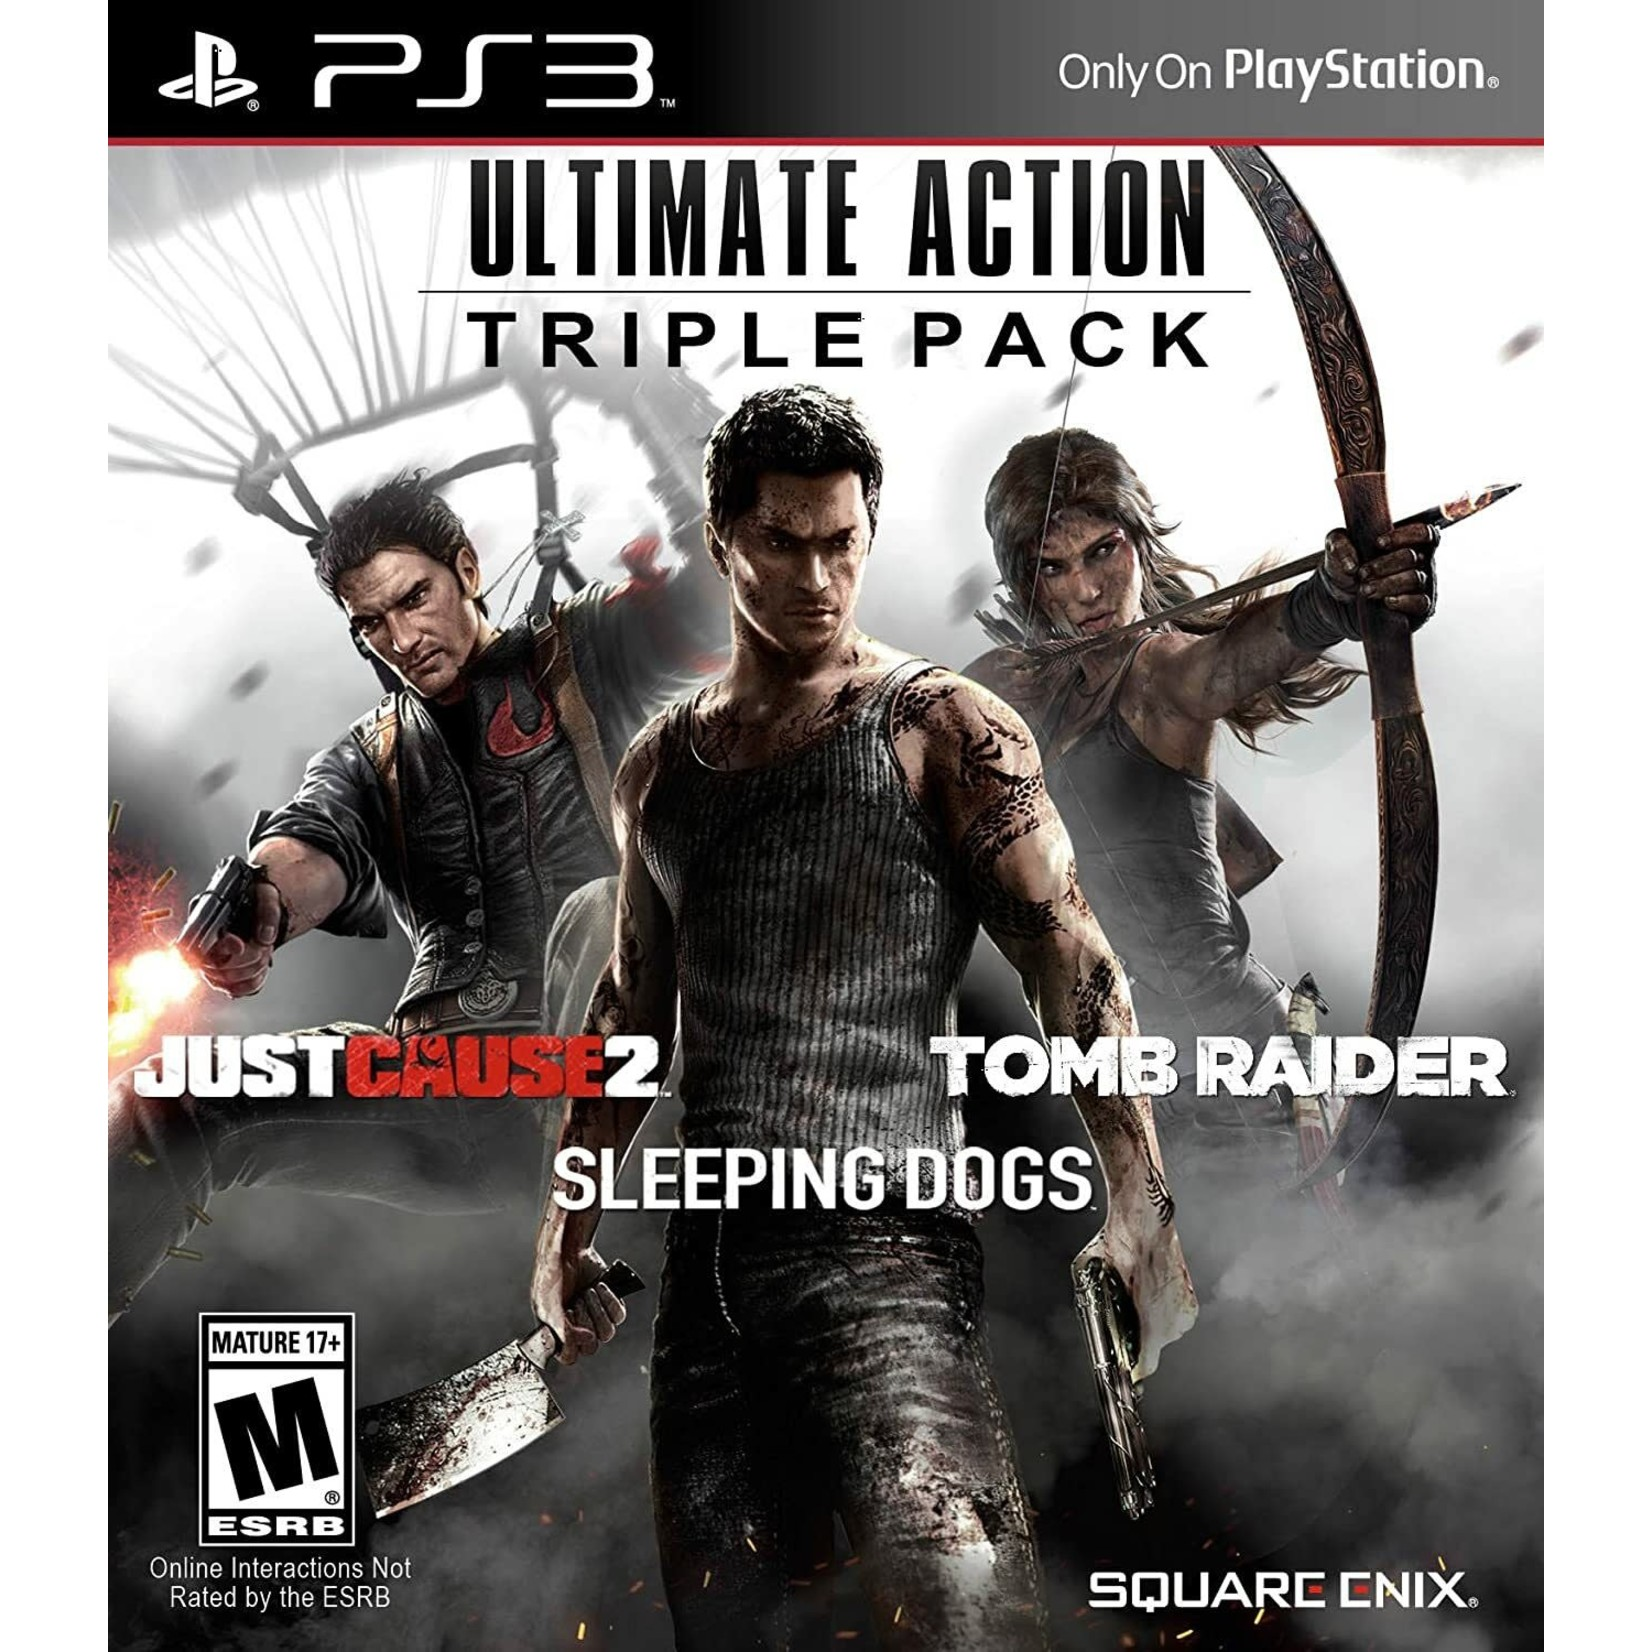 PS3U-Ultimate Action Triple Pack